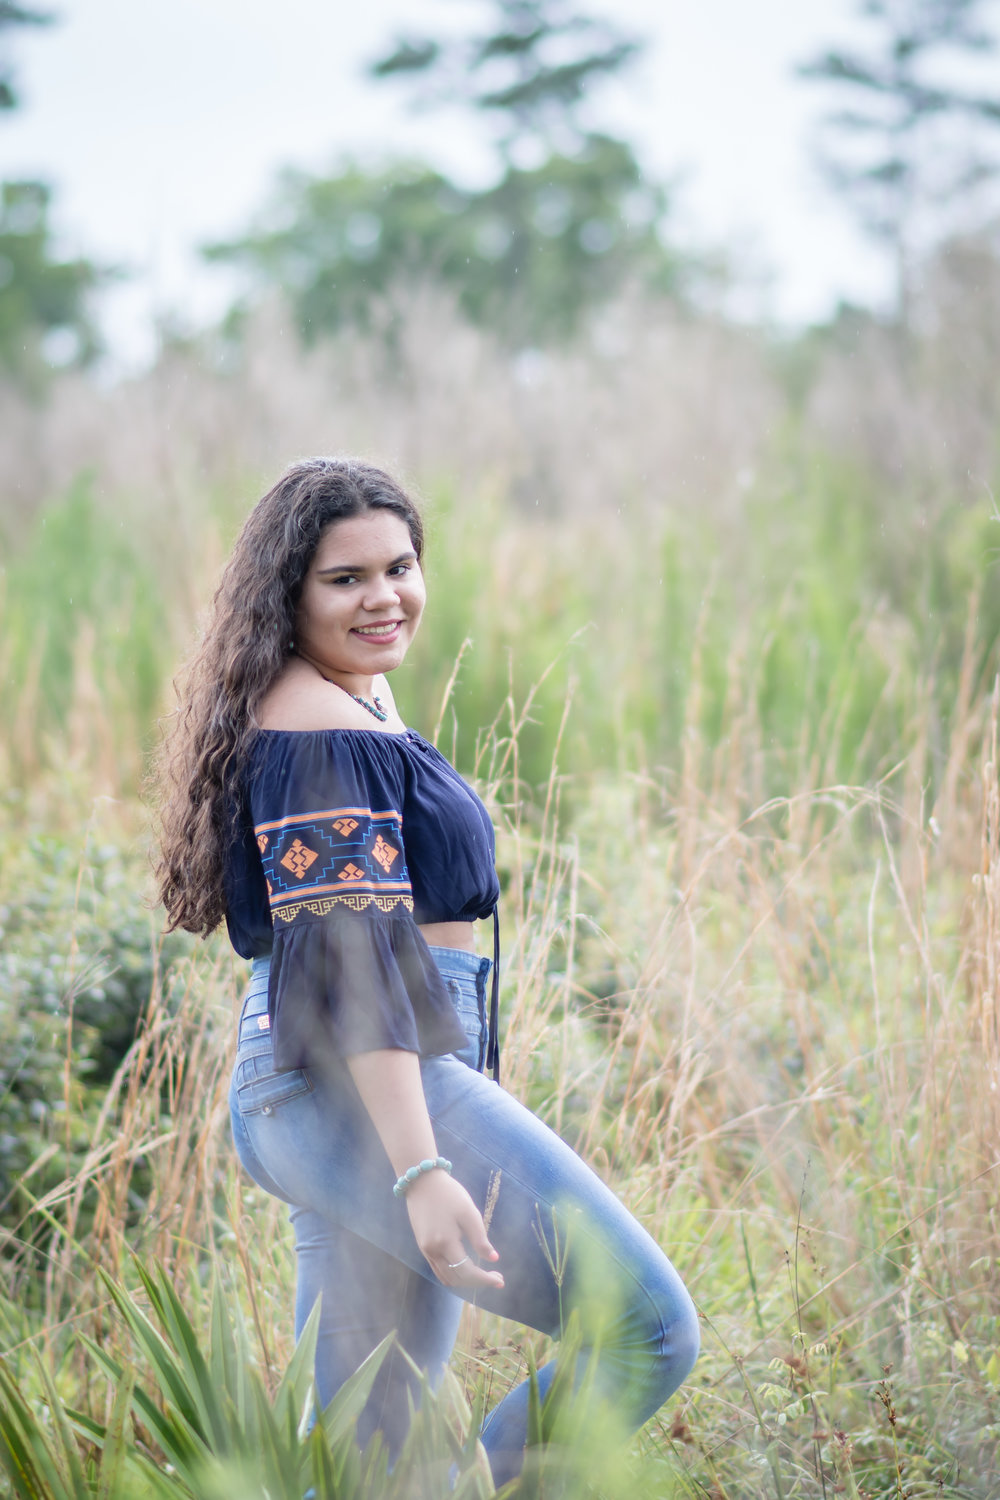 high-school-senior-photos-orlando-photographer-yanitza-ninett-62.jpg